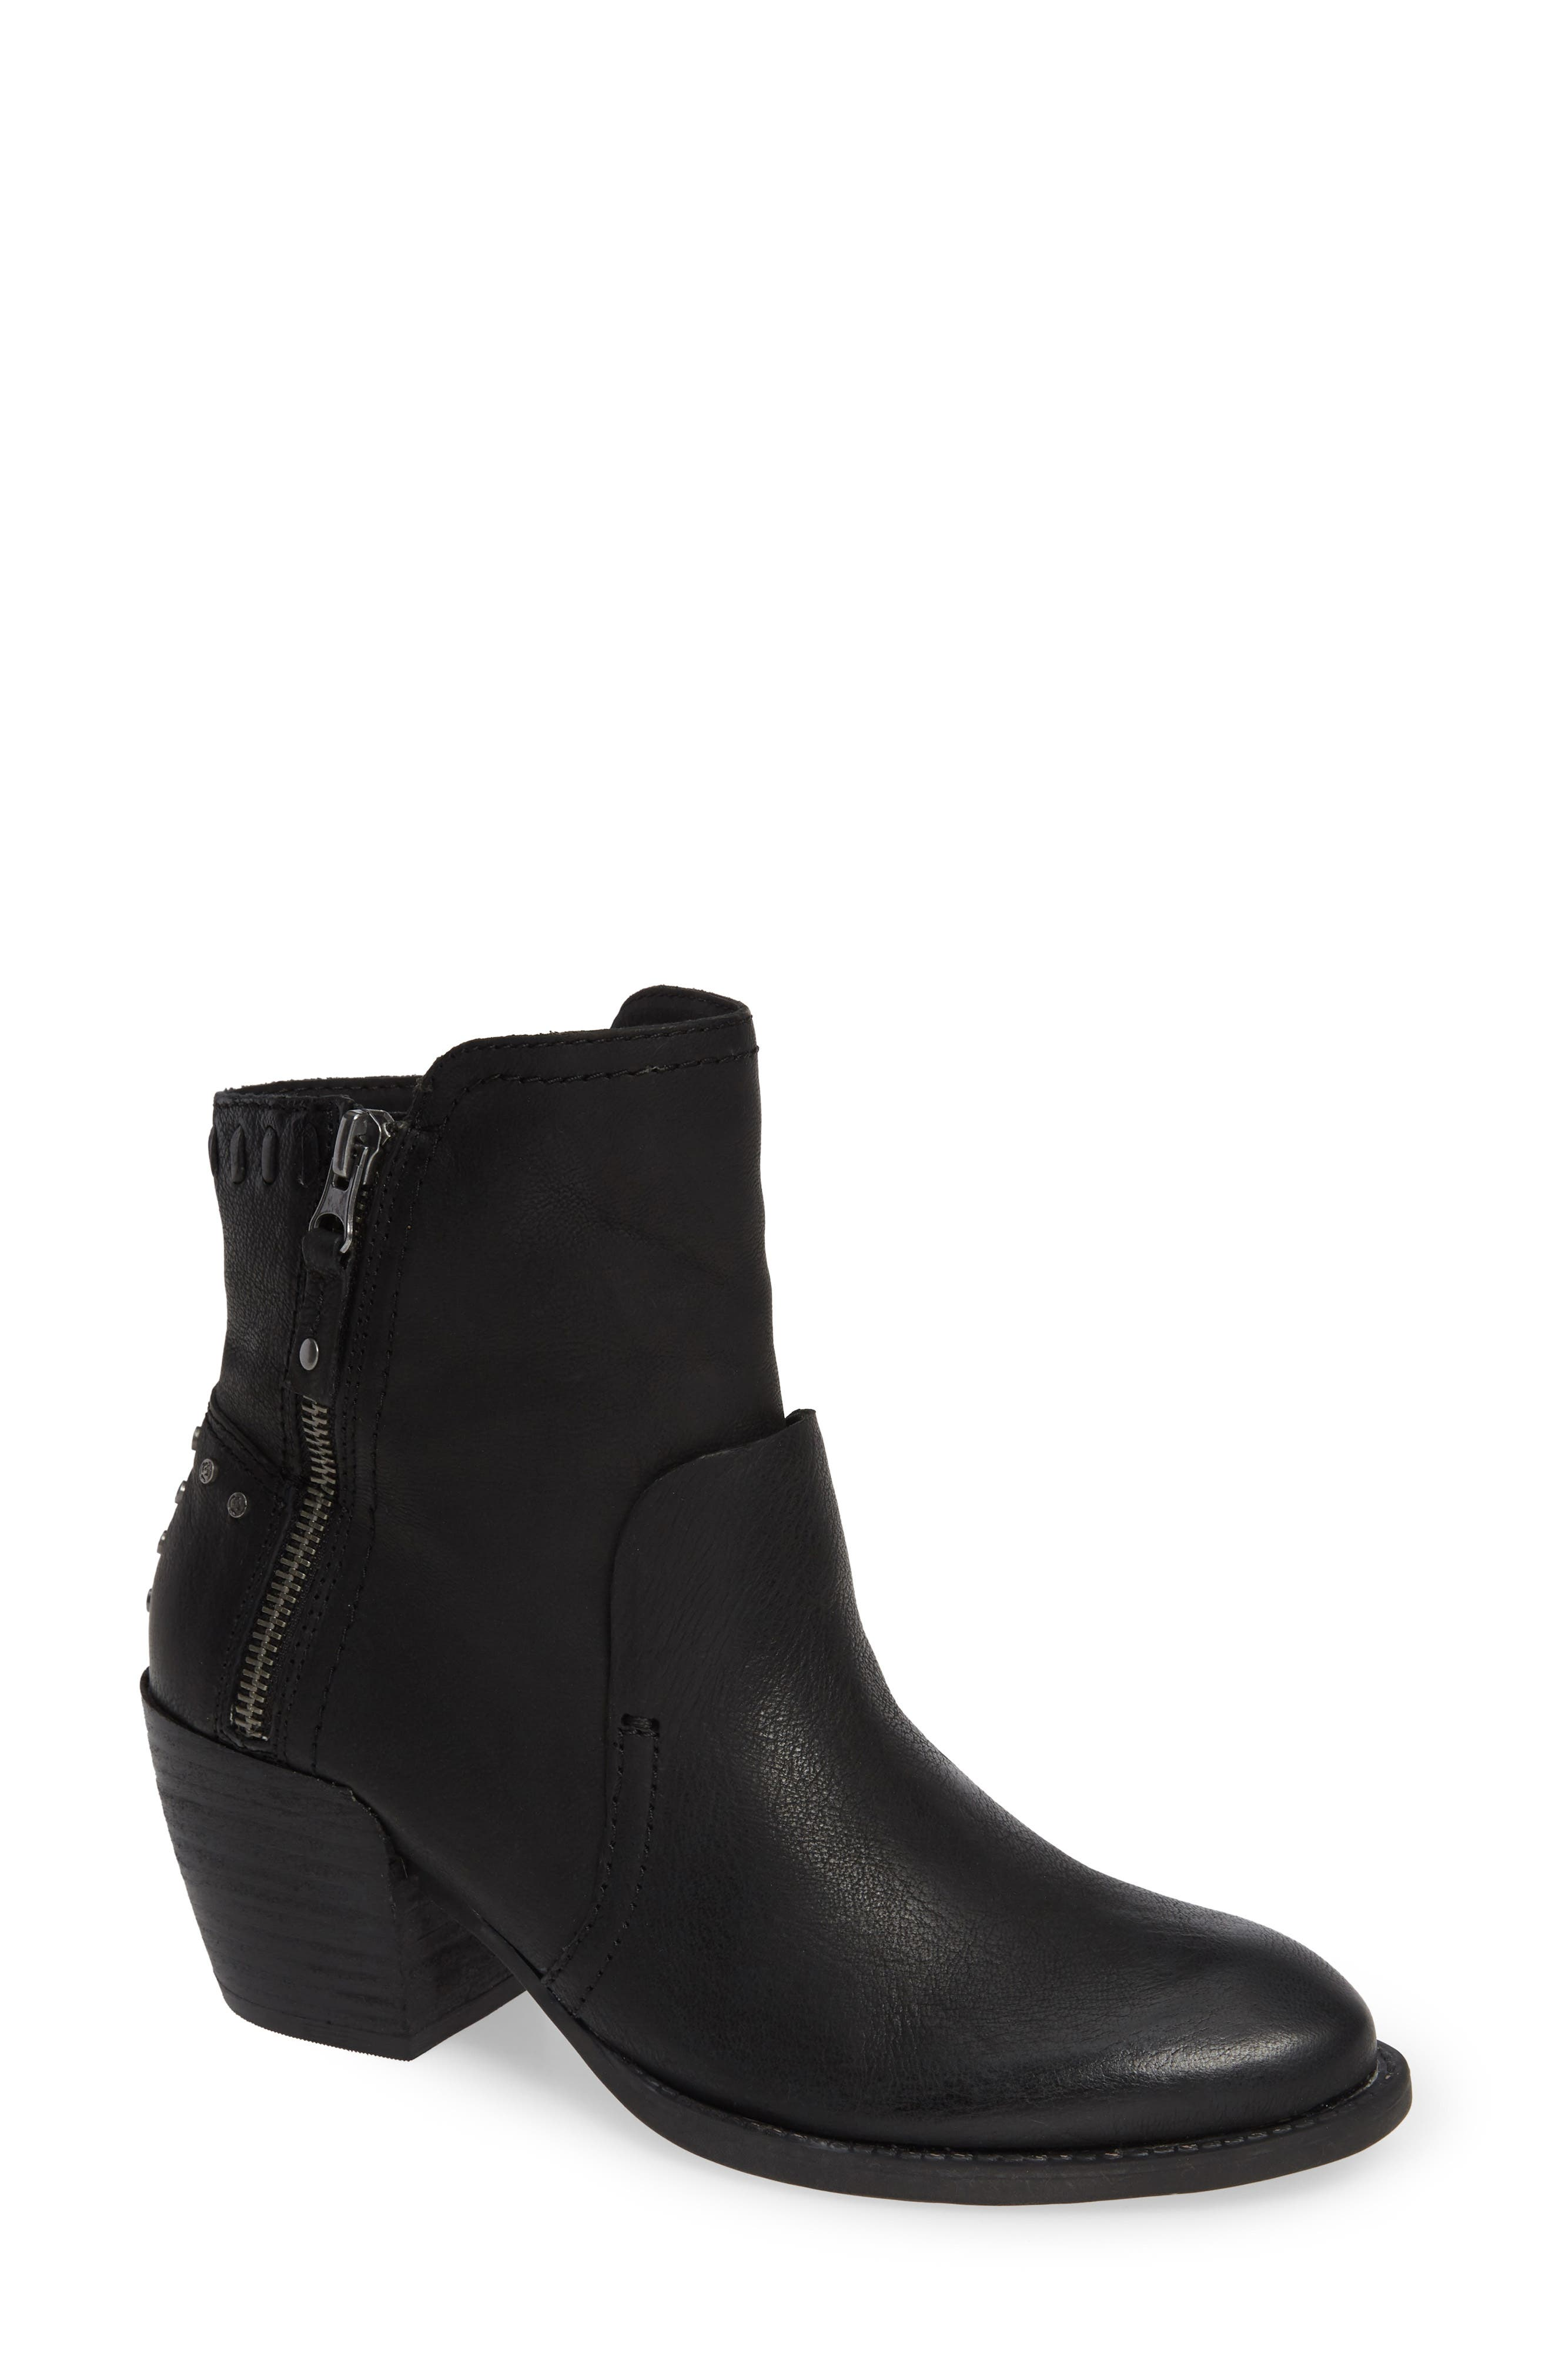 Red Eye Bootie,                             Main thumbnail 1, color,                             BLACK LEATHER